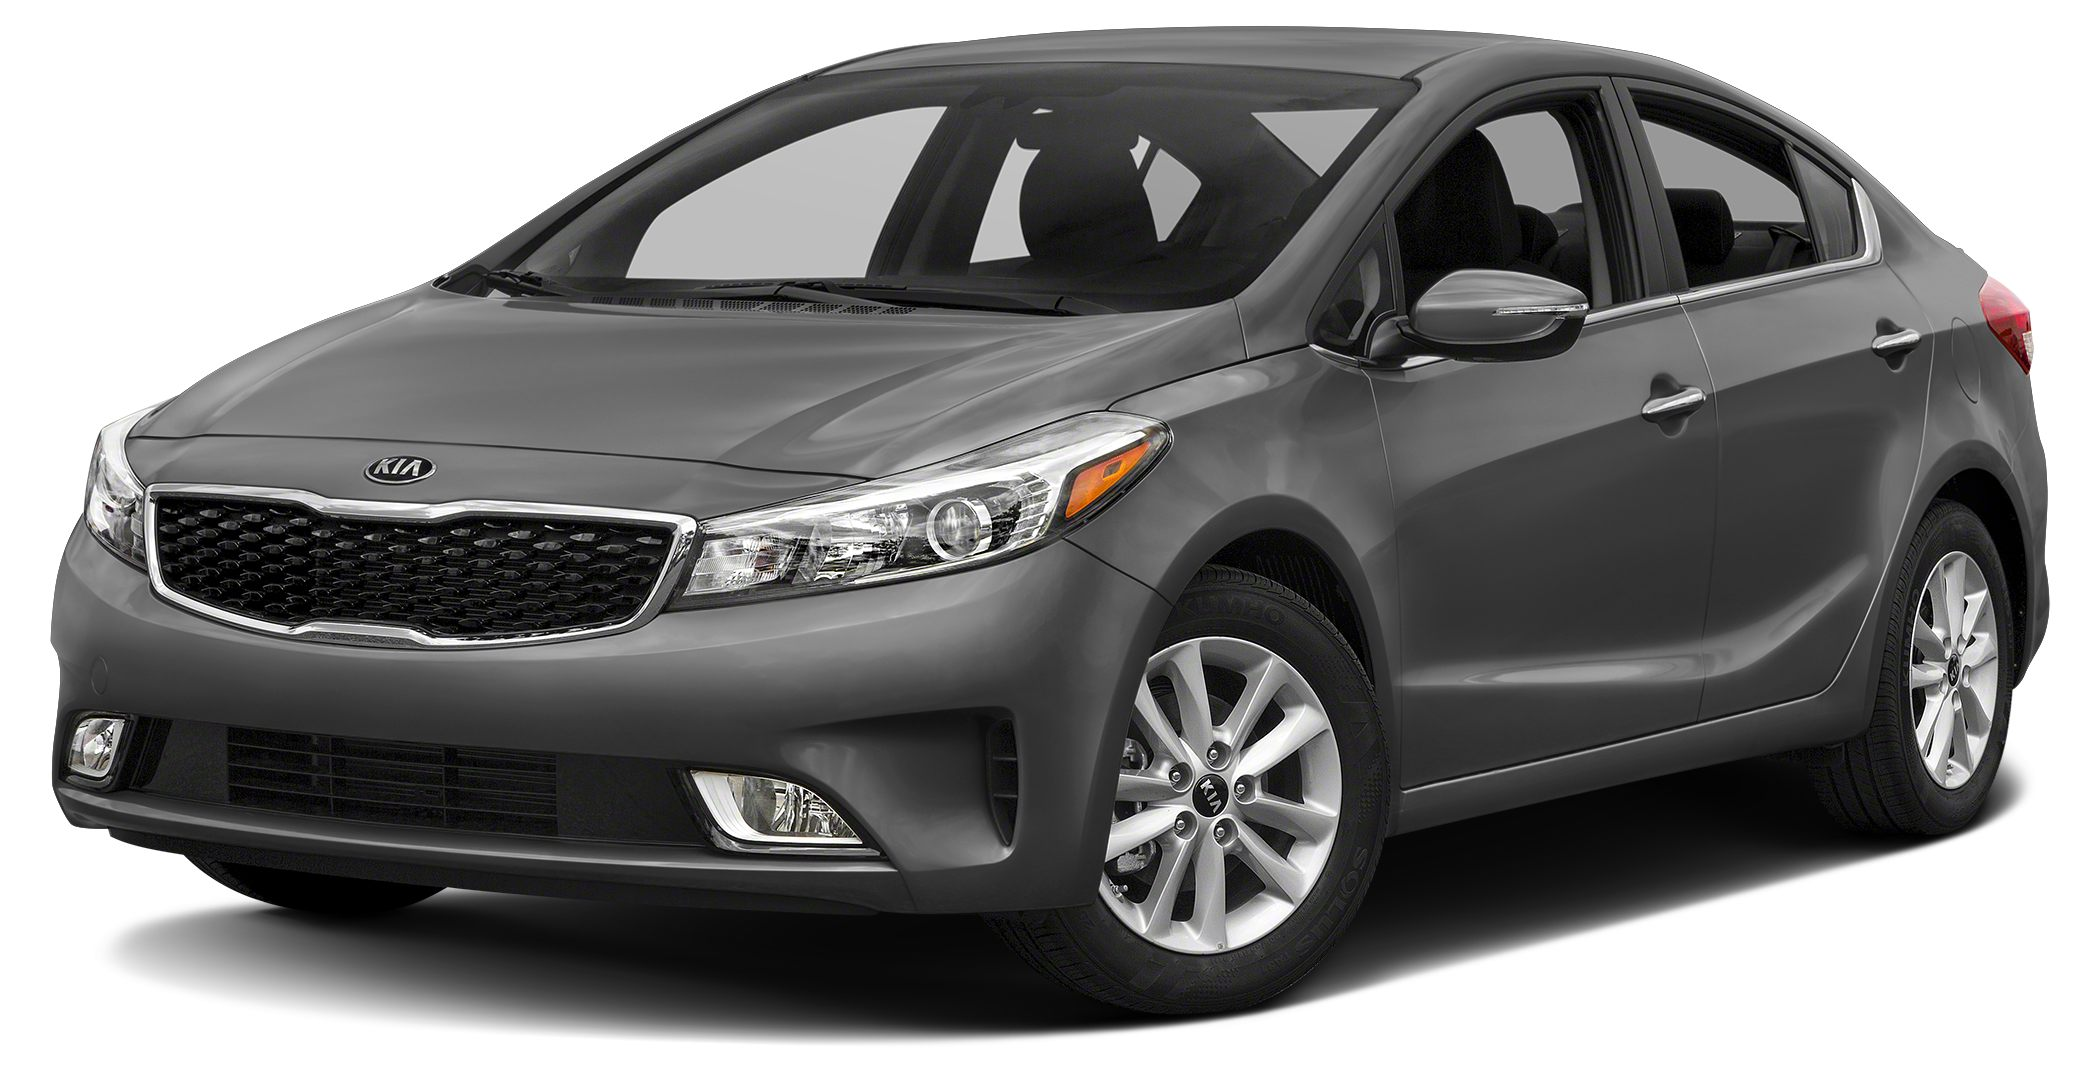 2017 Kia Forte S The Kia Forte is peppy economical and surprisingly loaded with tech features I